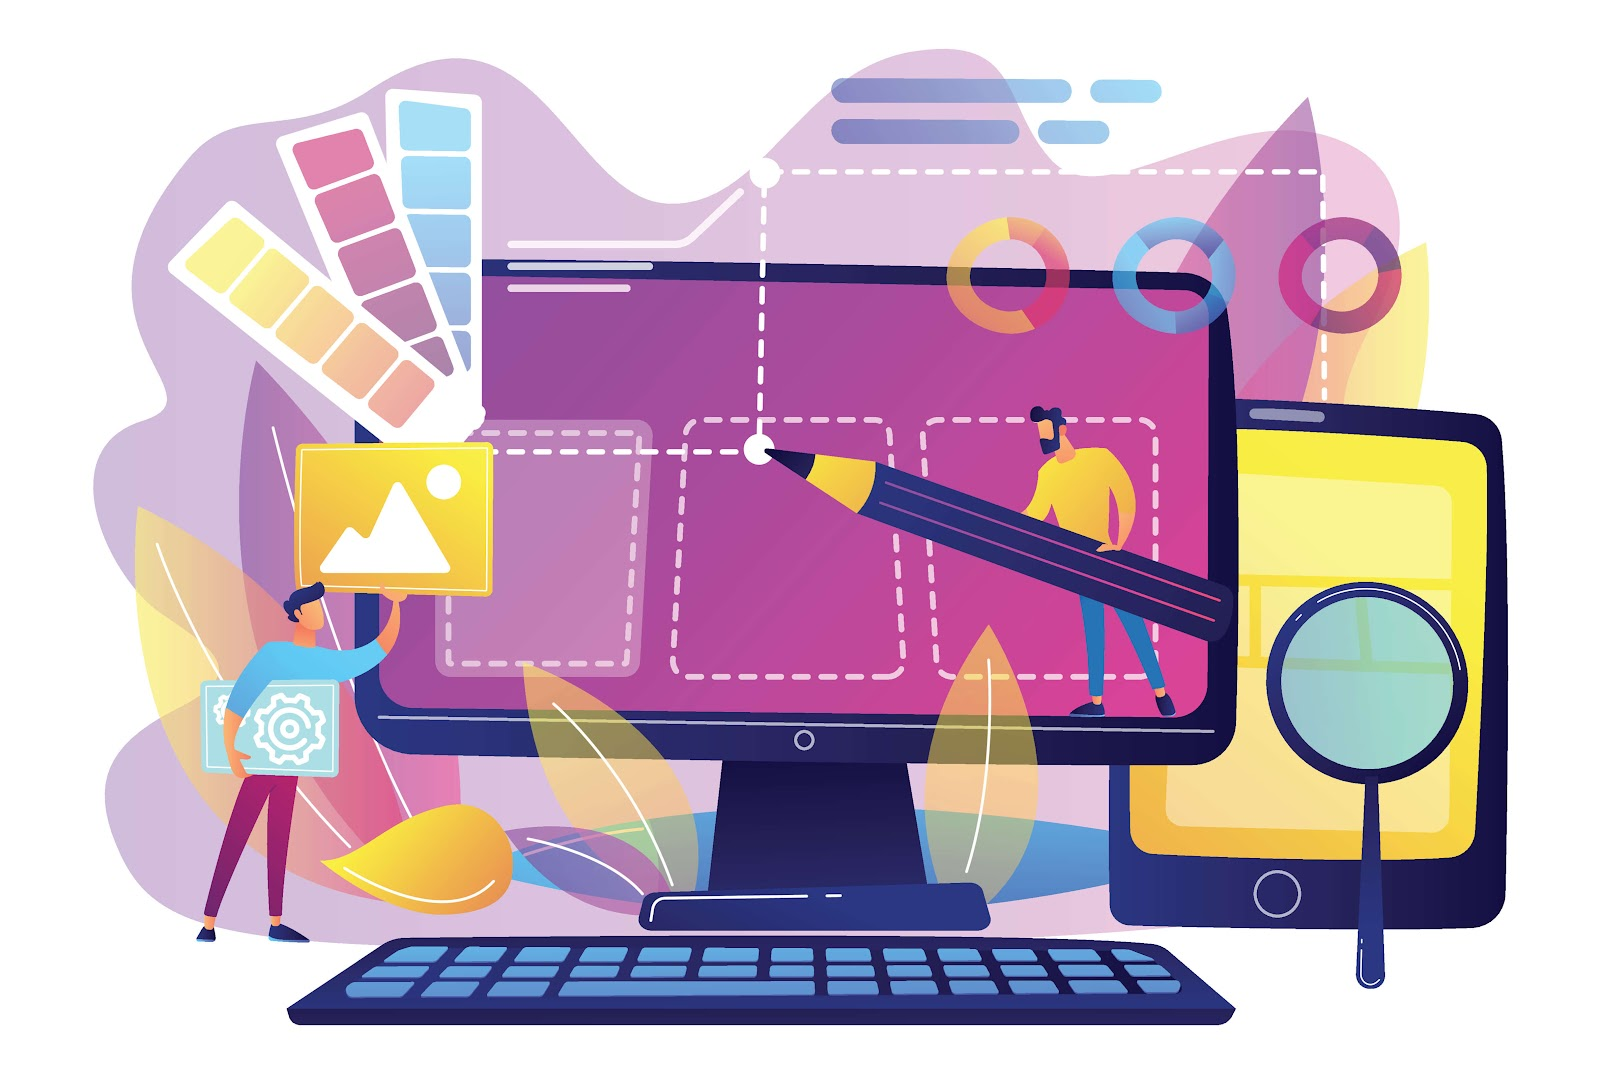 html and css coding languages being used to help kids make websites